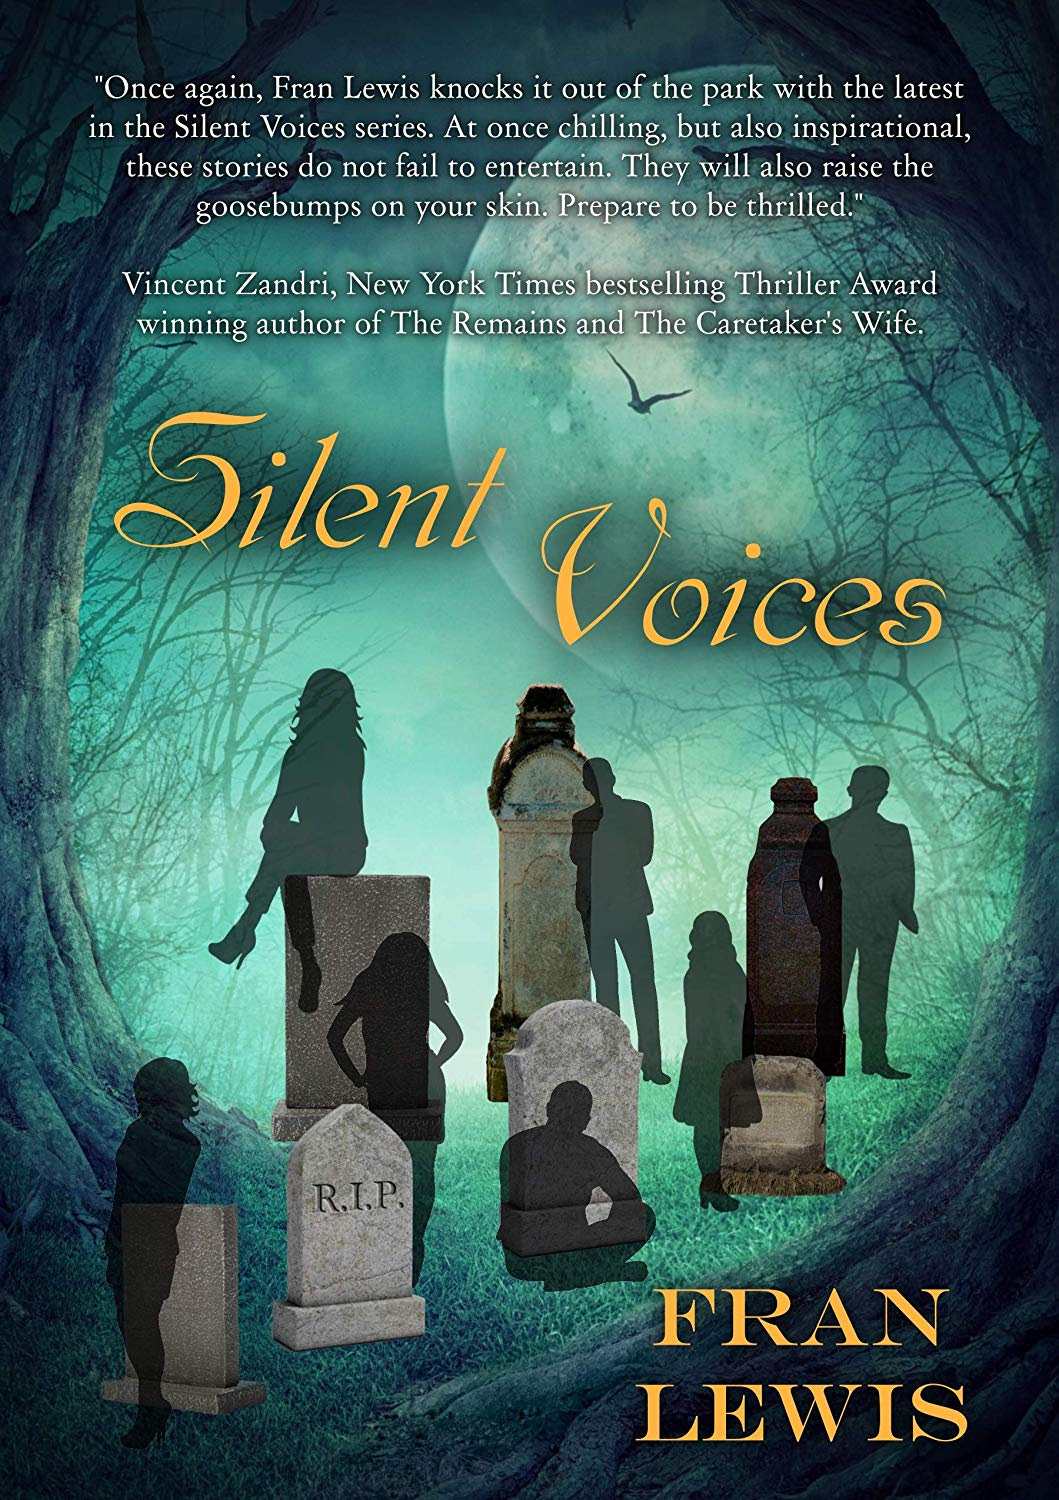 https://www.amazon.com/Silent-Voices-Fran-Lewis/dp/1099882451/ref=as_li_ss_tl?keywords=silent+voice+by+frank+lewis&qid=1569844886&s=gateway&sr=8-2-fkmr0&linkCode=ll1&tag=sapsbooblo-20&linkId=28e530b871bb9ddb5908887458d0d3cb&language=en_US